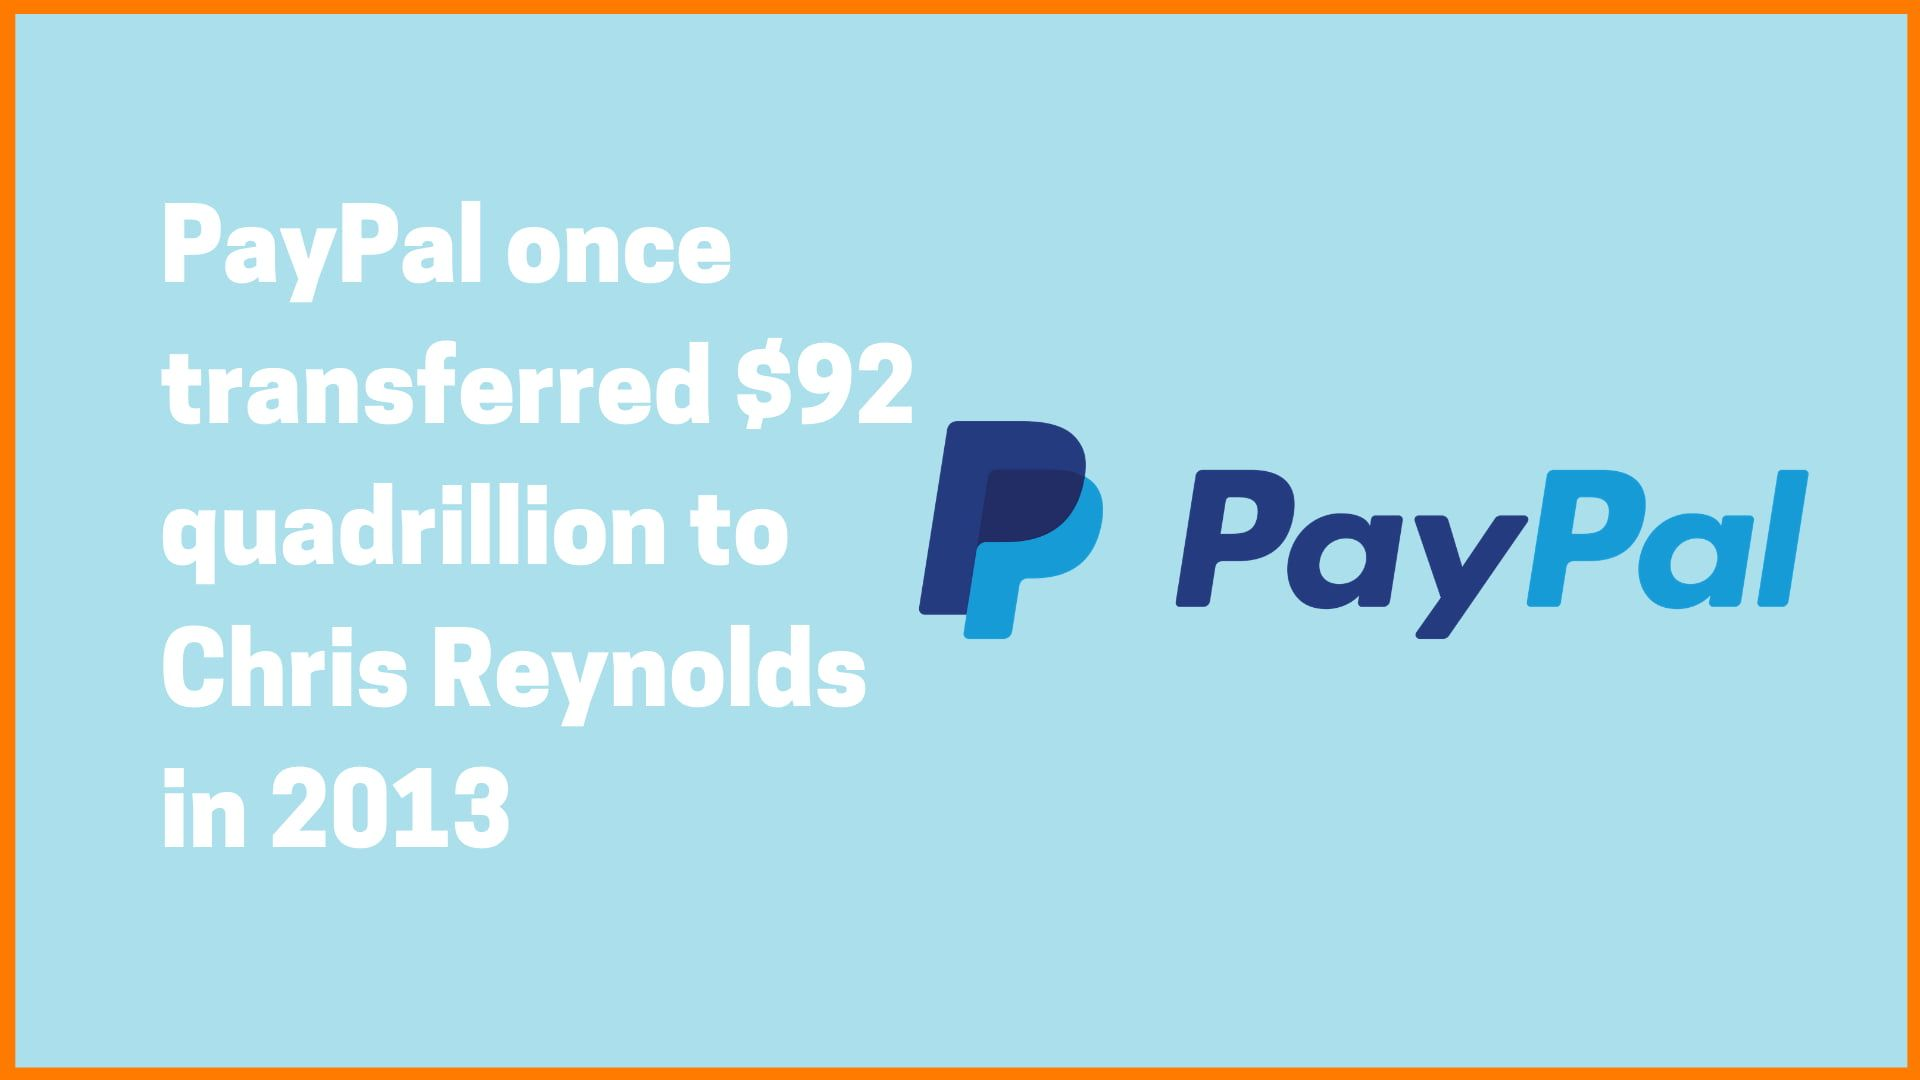 PayPal accidentally transferred $92 Quadrillion to a man in Delaware